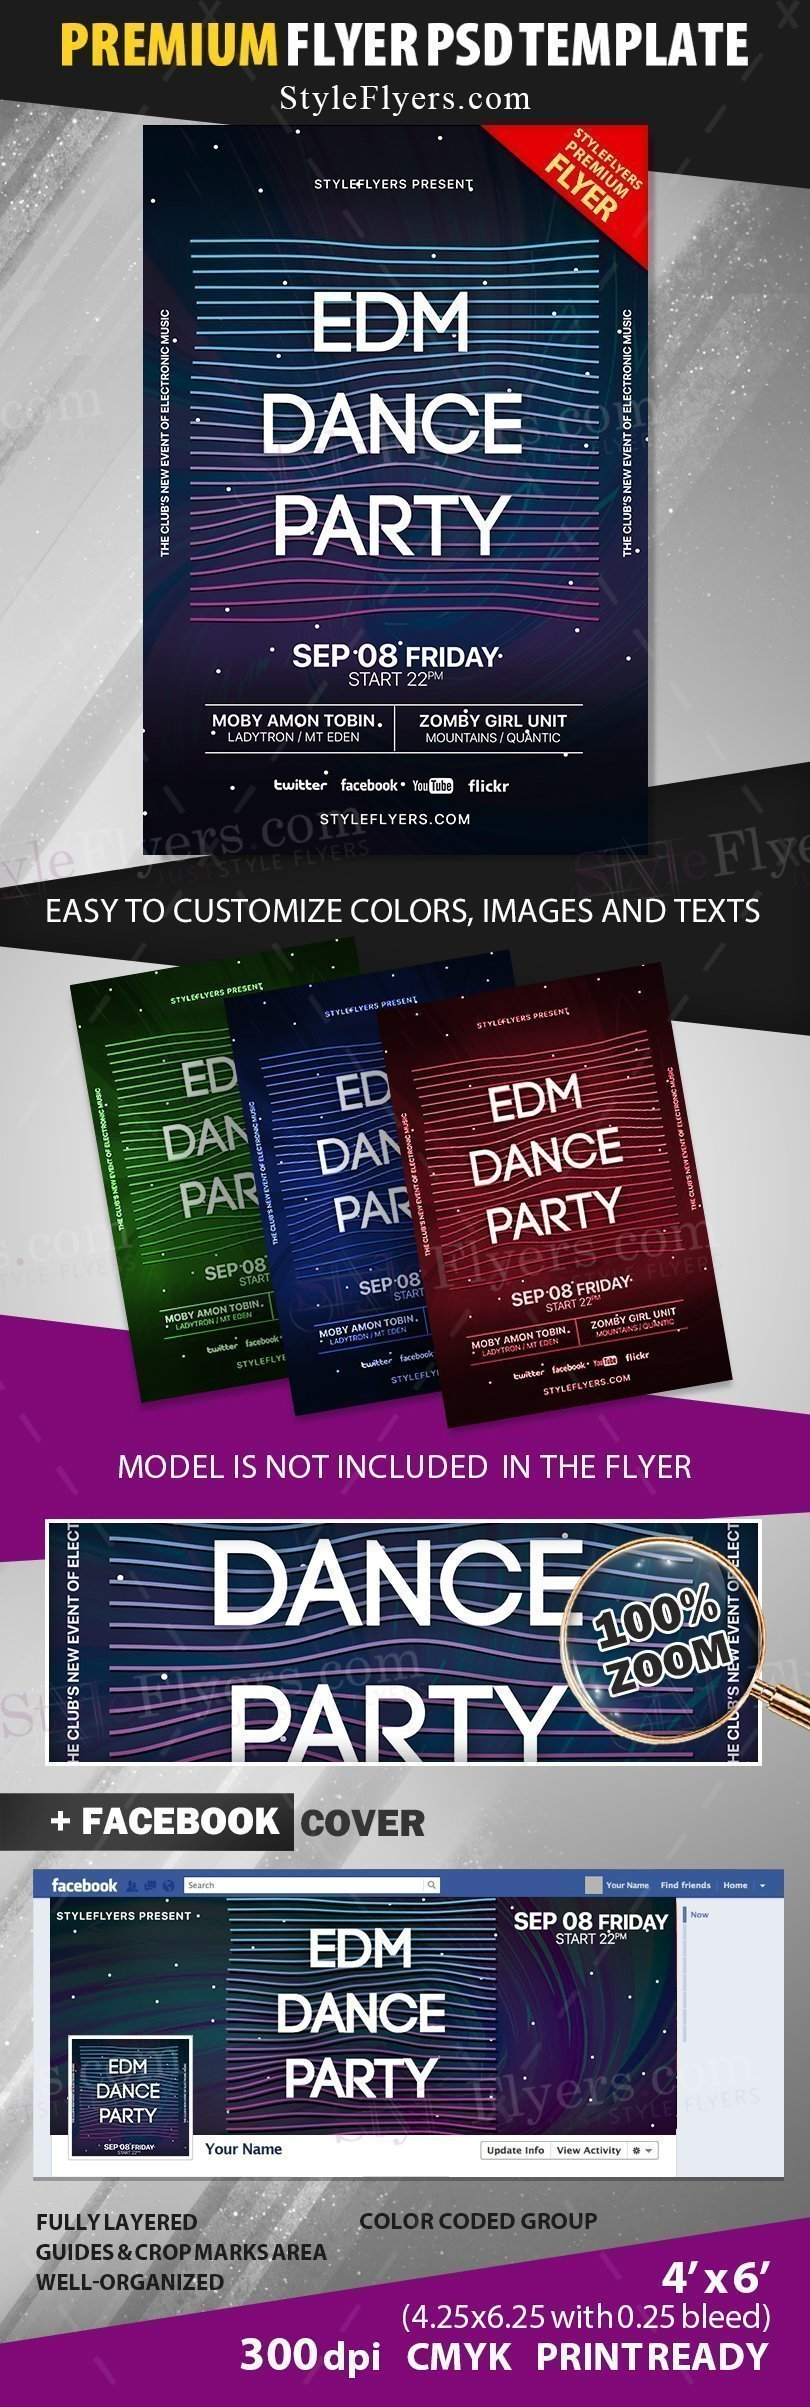 preview_EDM Dance Party_psd_flyer